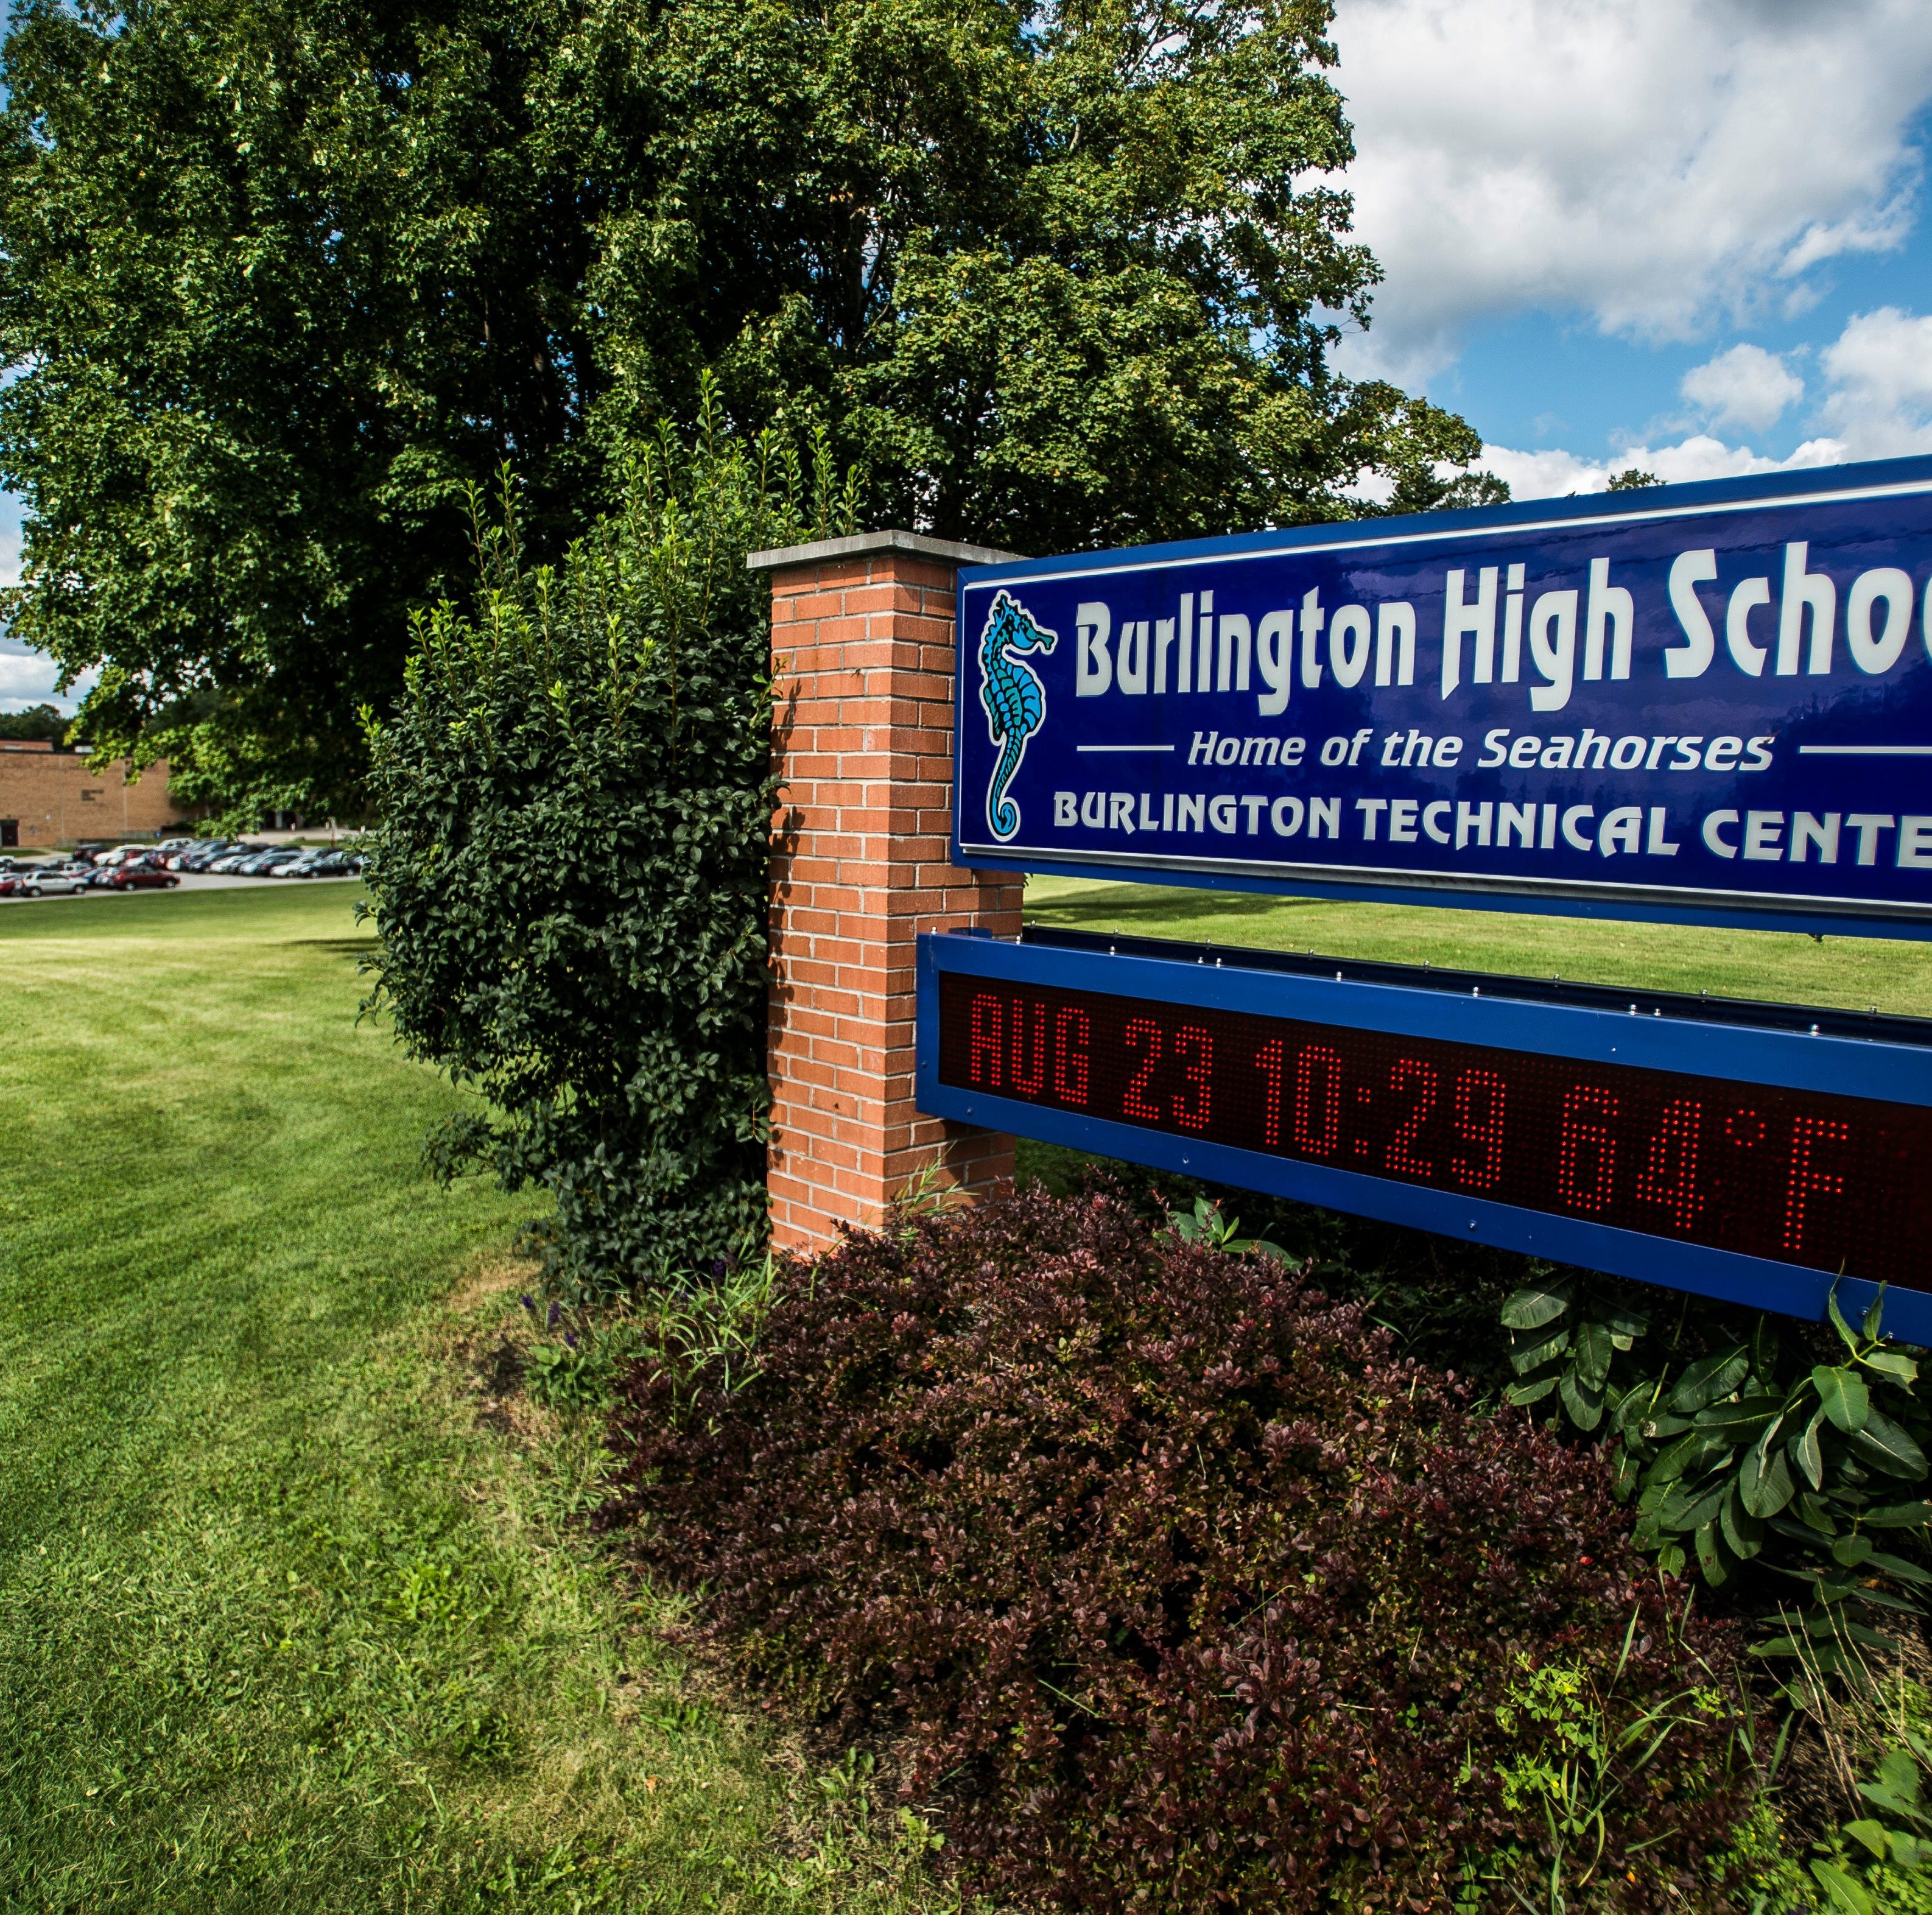 BTV residents will decide in November whether to invest in a $70 million high school renovation bond